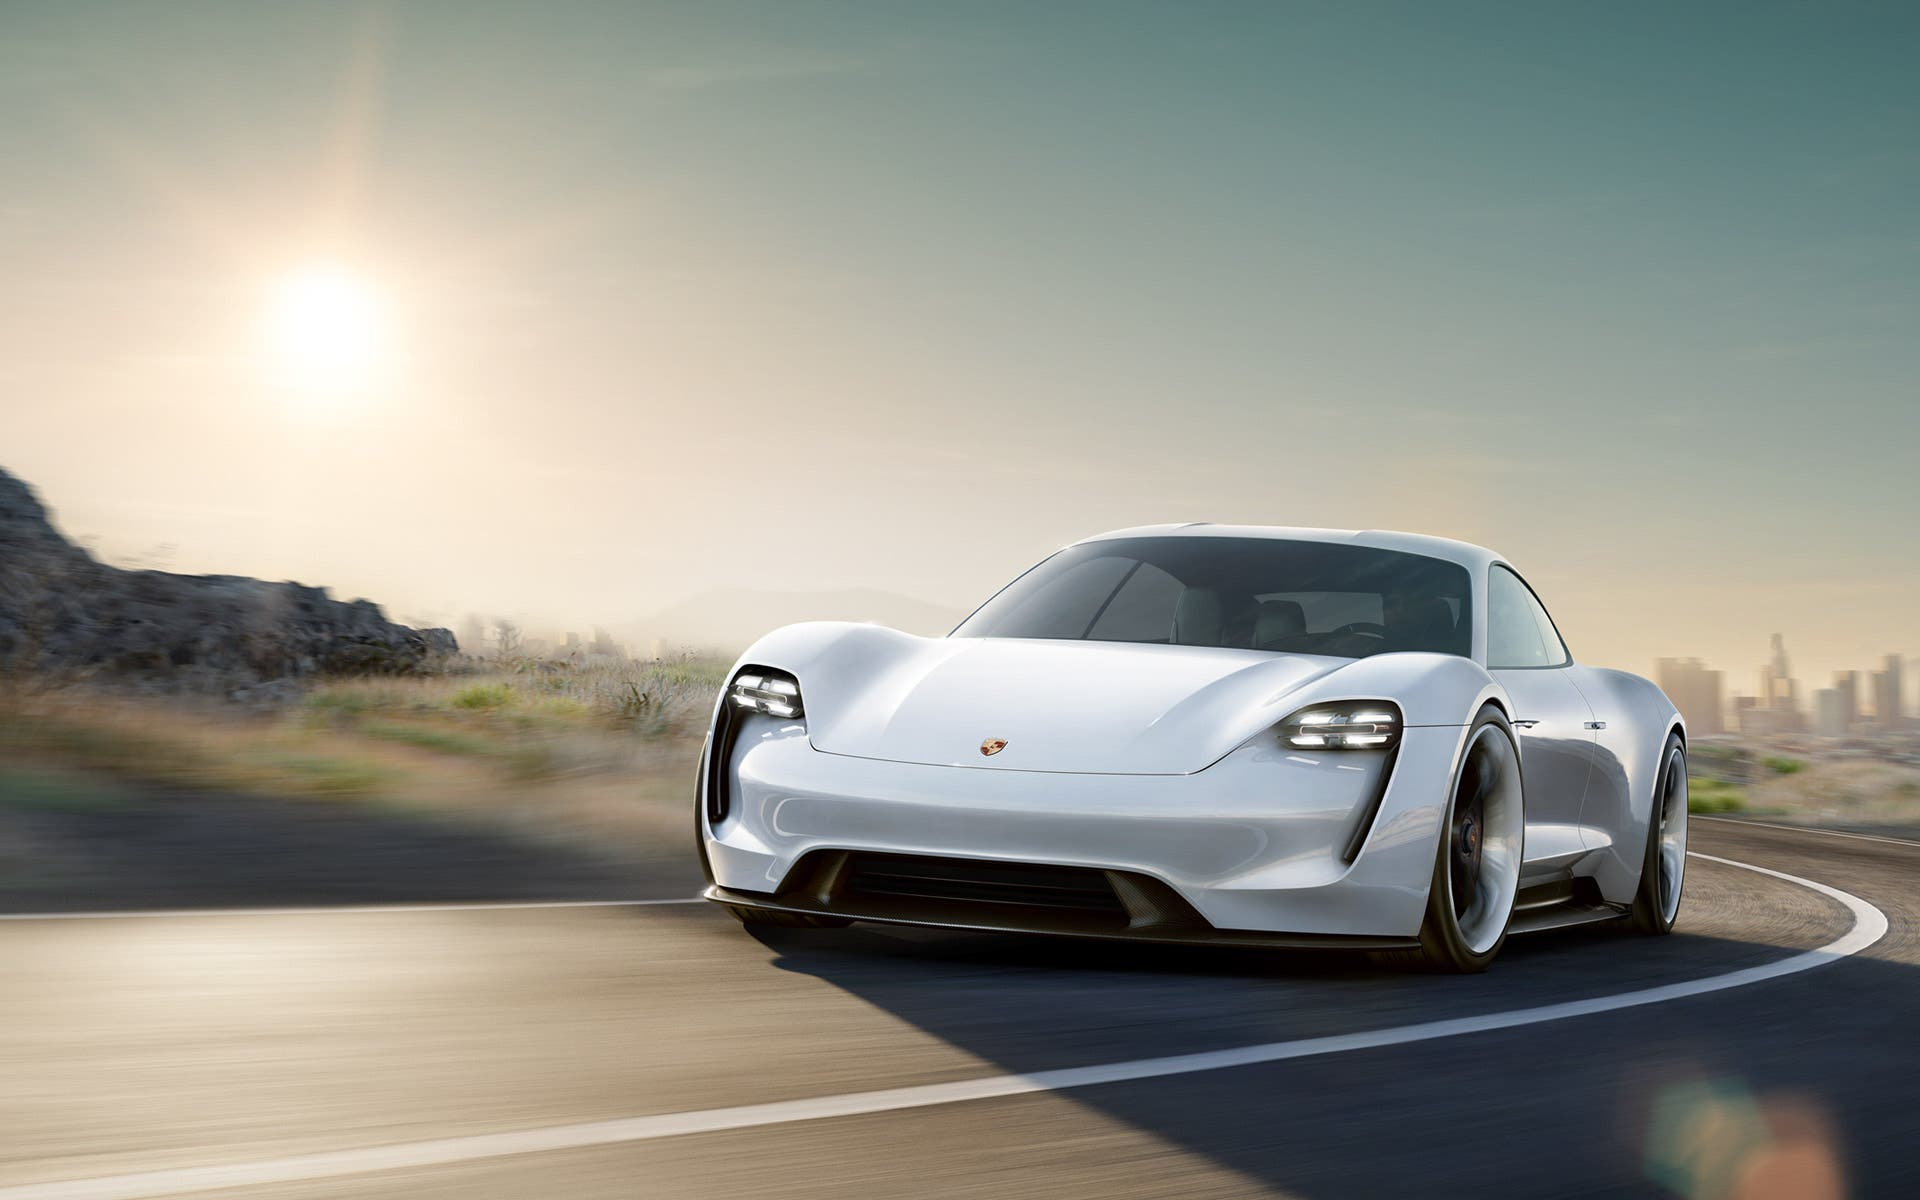 Mercedes B Class Electric >> Electric Porsche — Mission E — Would Be Awesome... If Built | CleanTechnica